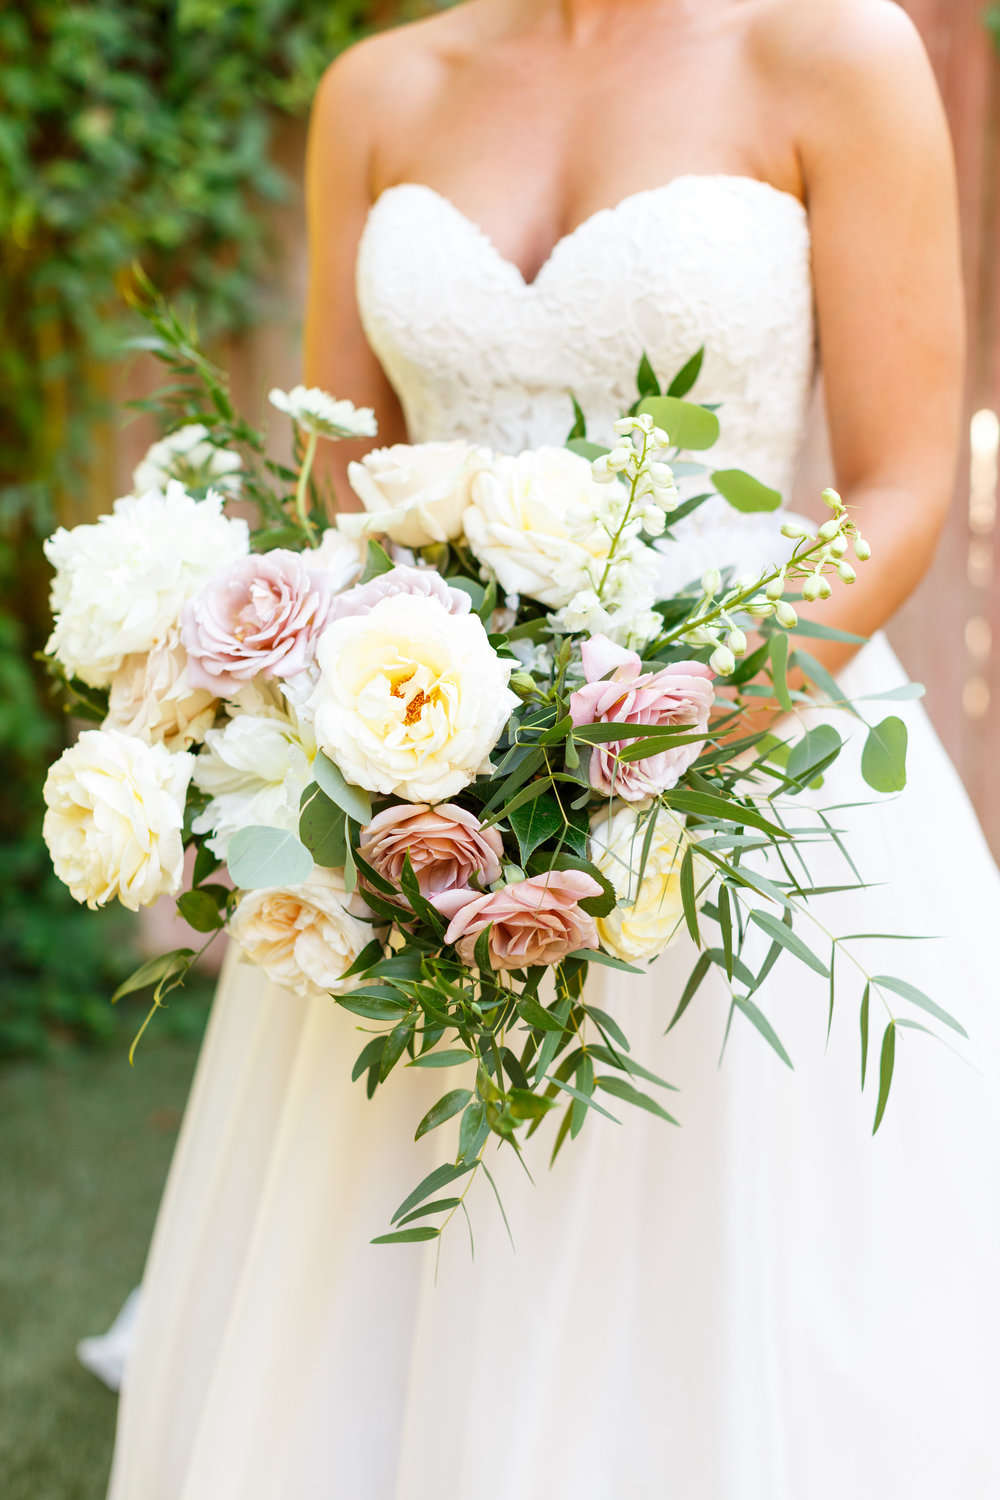 Romantic Bridal Bouquet 3.jpg